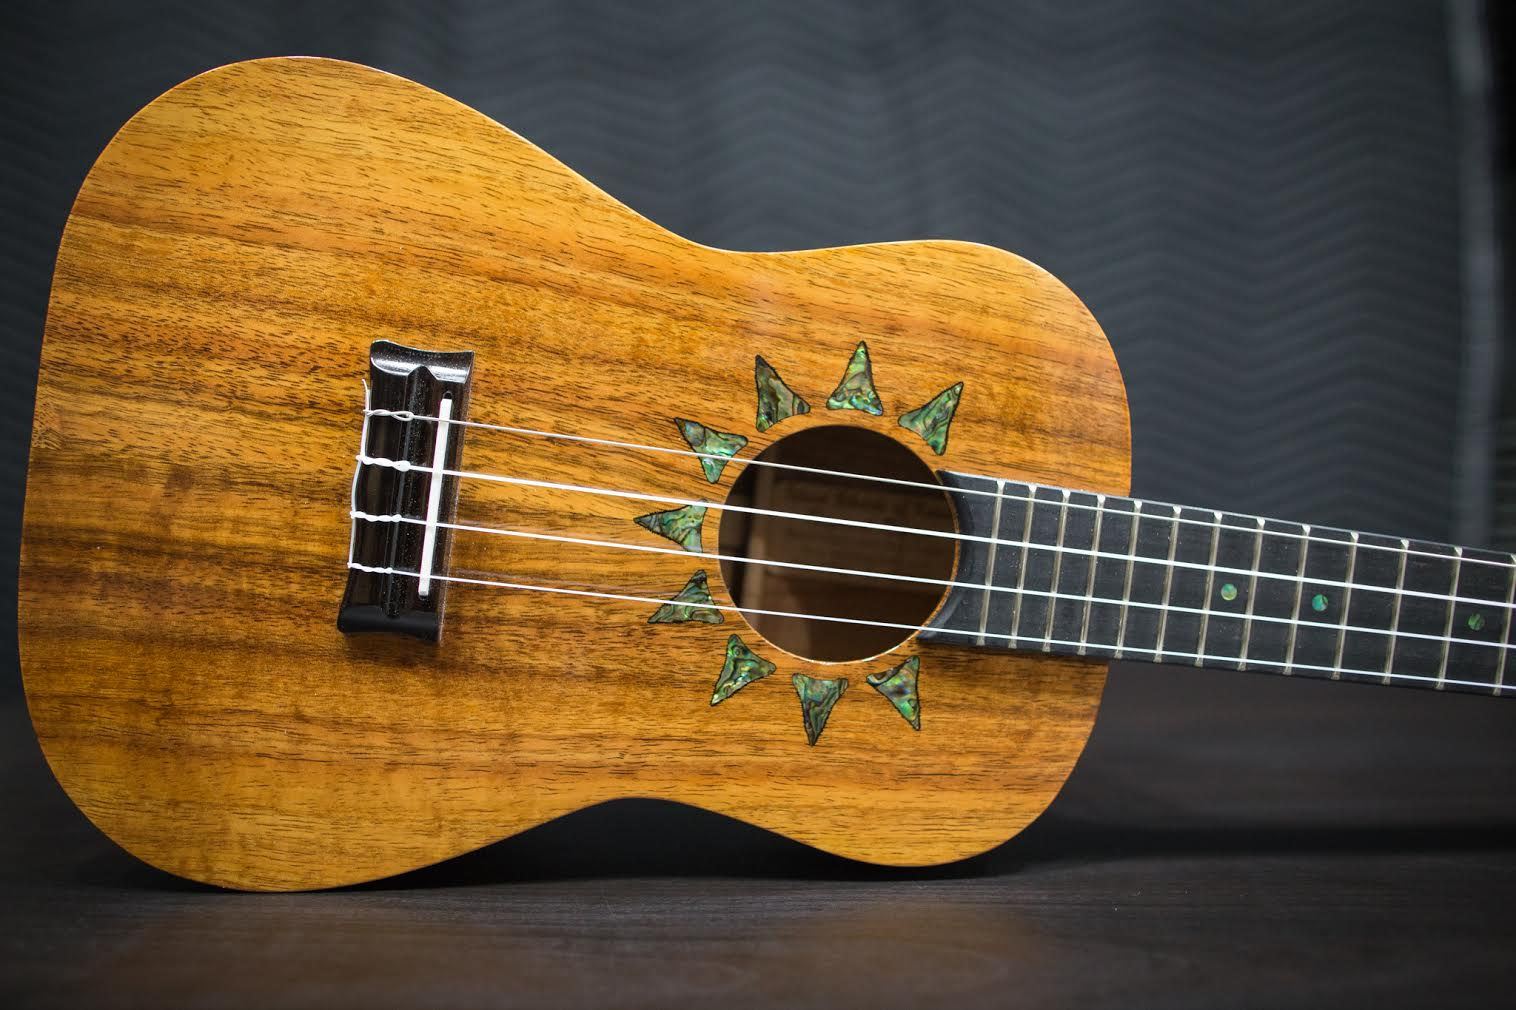 Island Ukulele For more information please call: (858) 414-4492